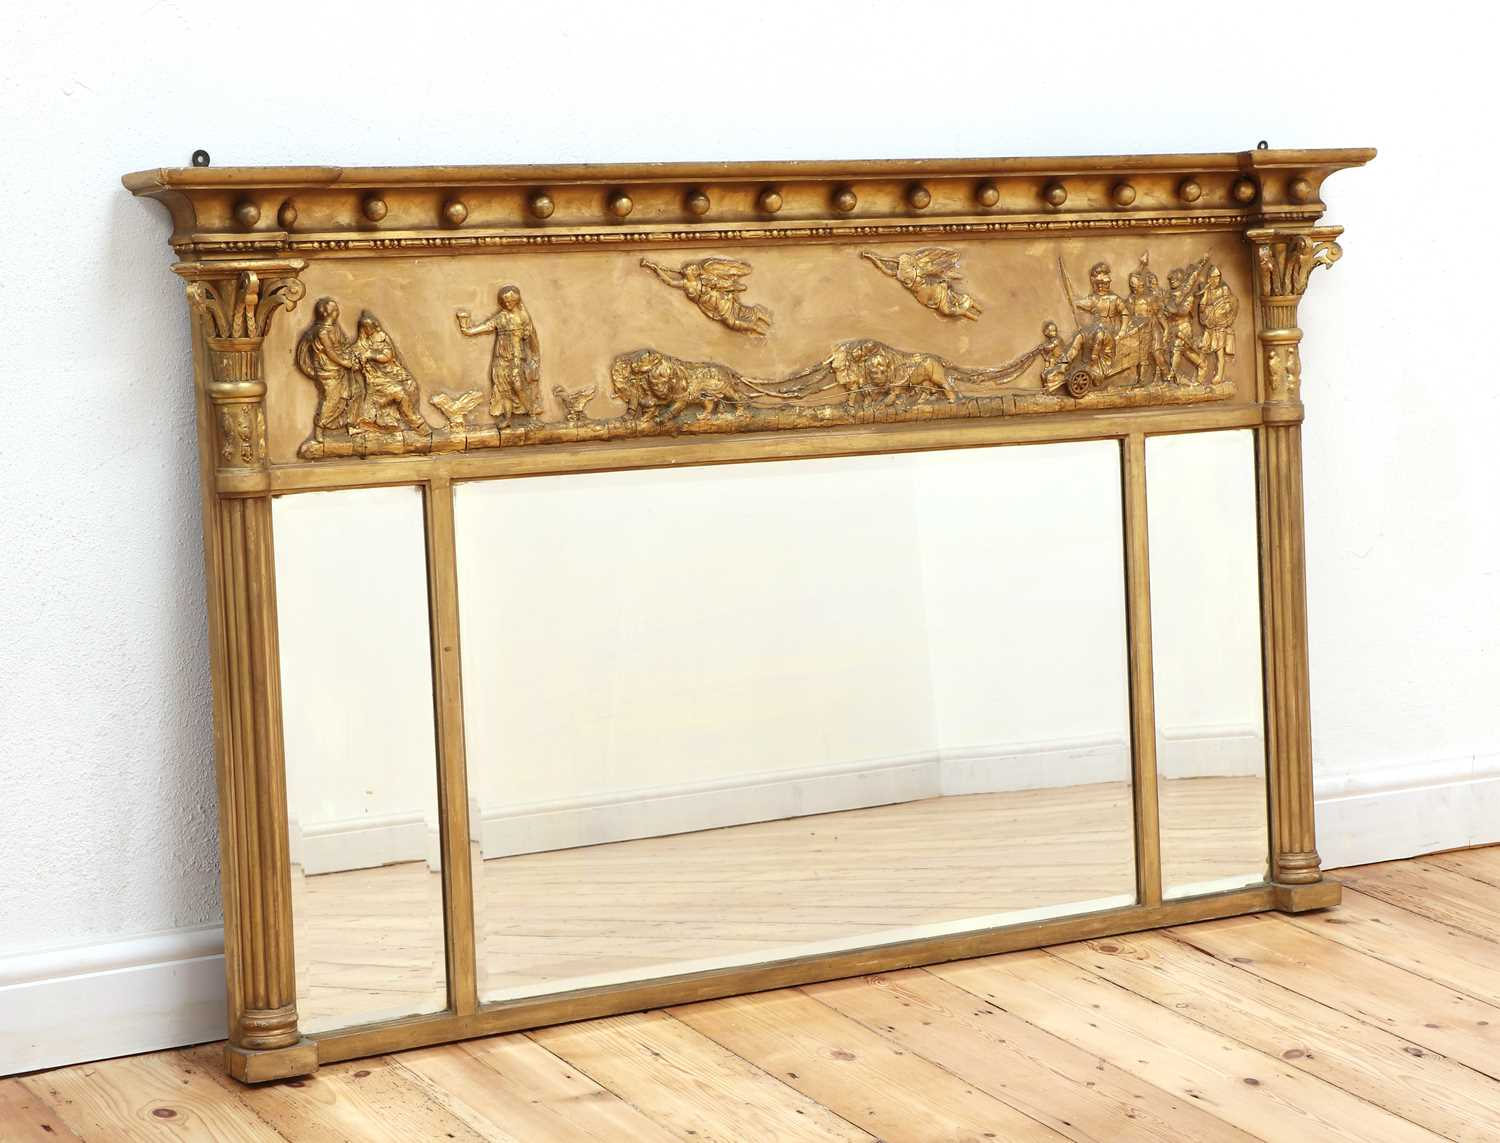 A Regency-style gilt overmantel mirror, - Image 2 of 4